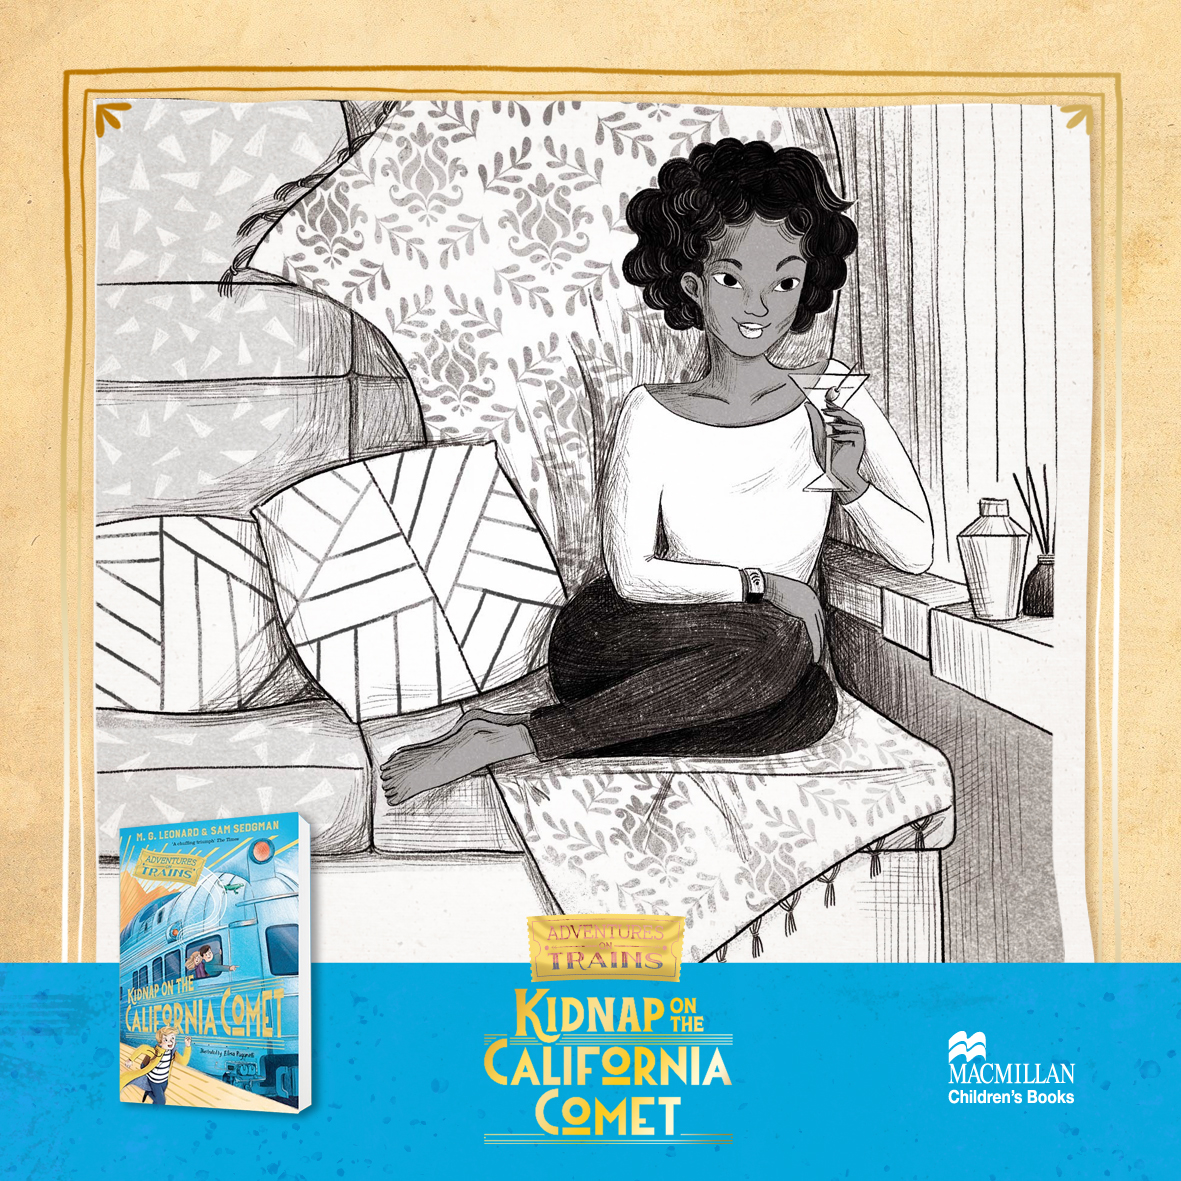 "Days pass by, and it's time to introduce another passenger of the California Comet. Please meet Zola D'Ormond! ""I like my creature comforts."" 🍸  #adventuresontrains #californiacomet #elisapaganellillustration @MGLnrd @samuelsedgman @MacmillanKidsUK https://t.co/VpzCHKFf7h"